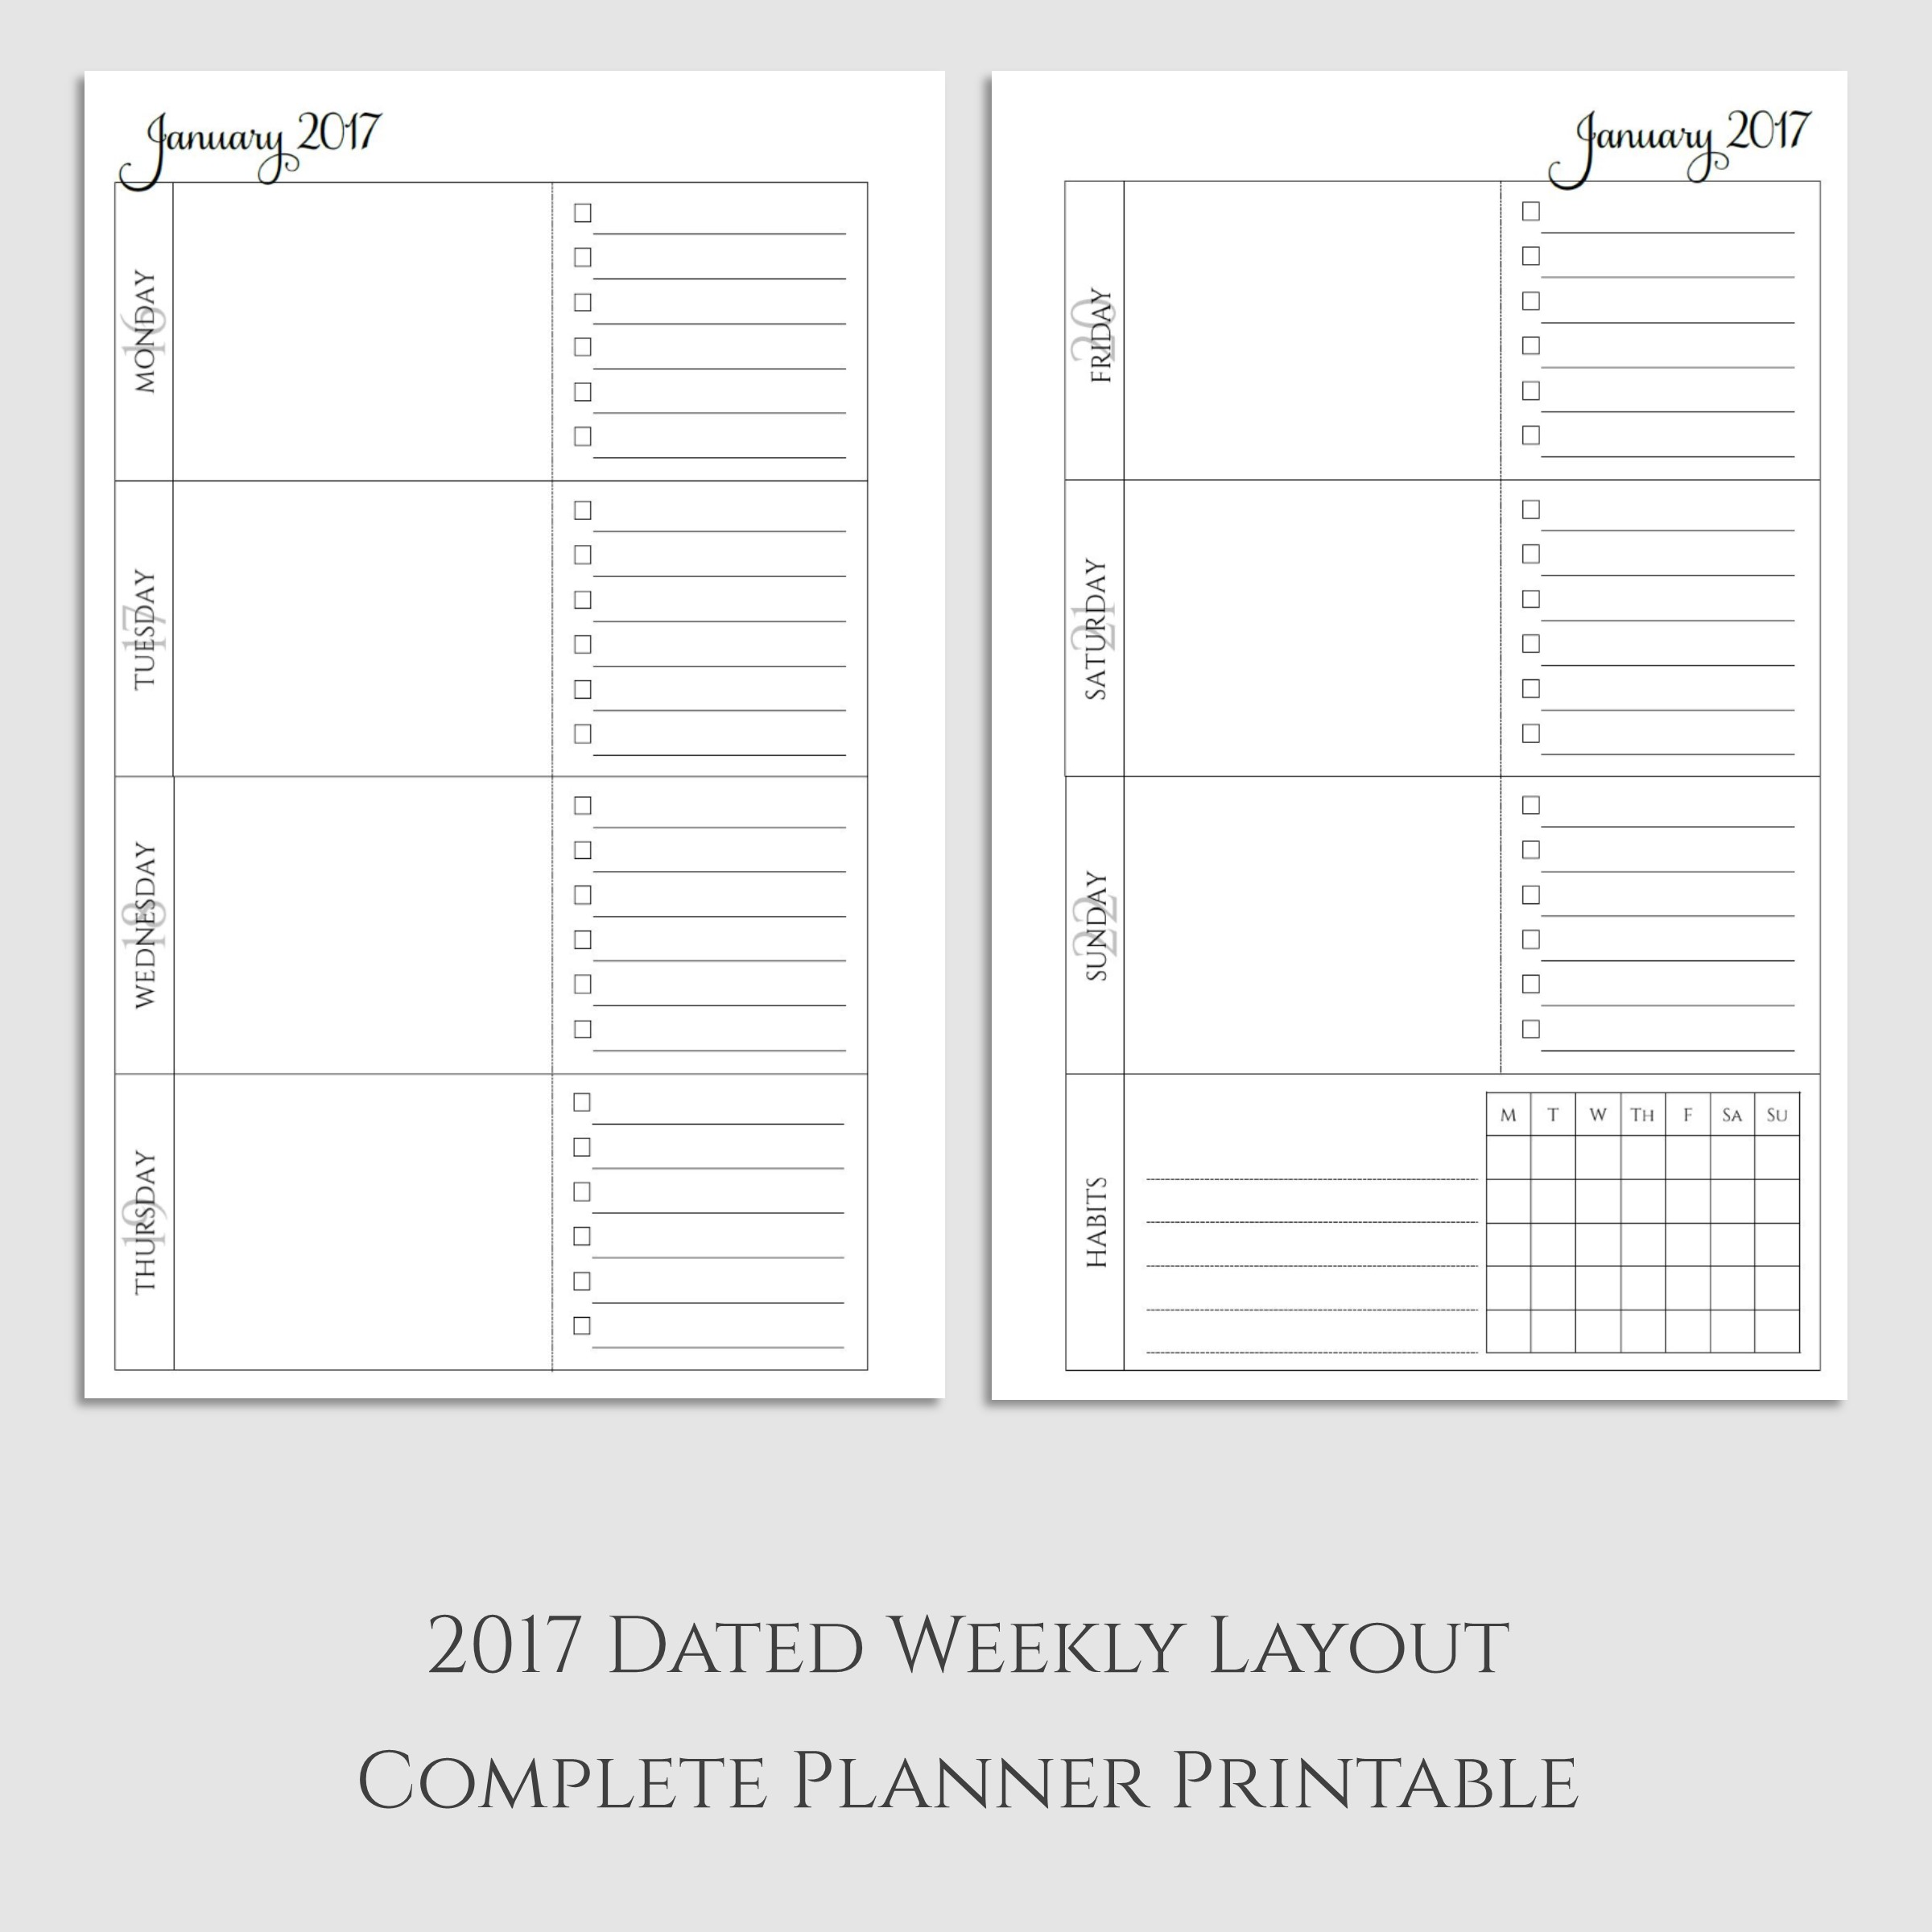 Complete 2017 Weekly Planner Printable with Habit Tracker